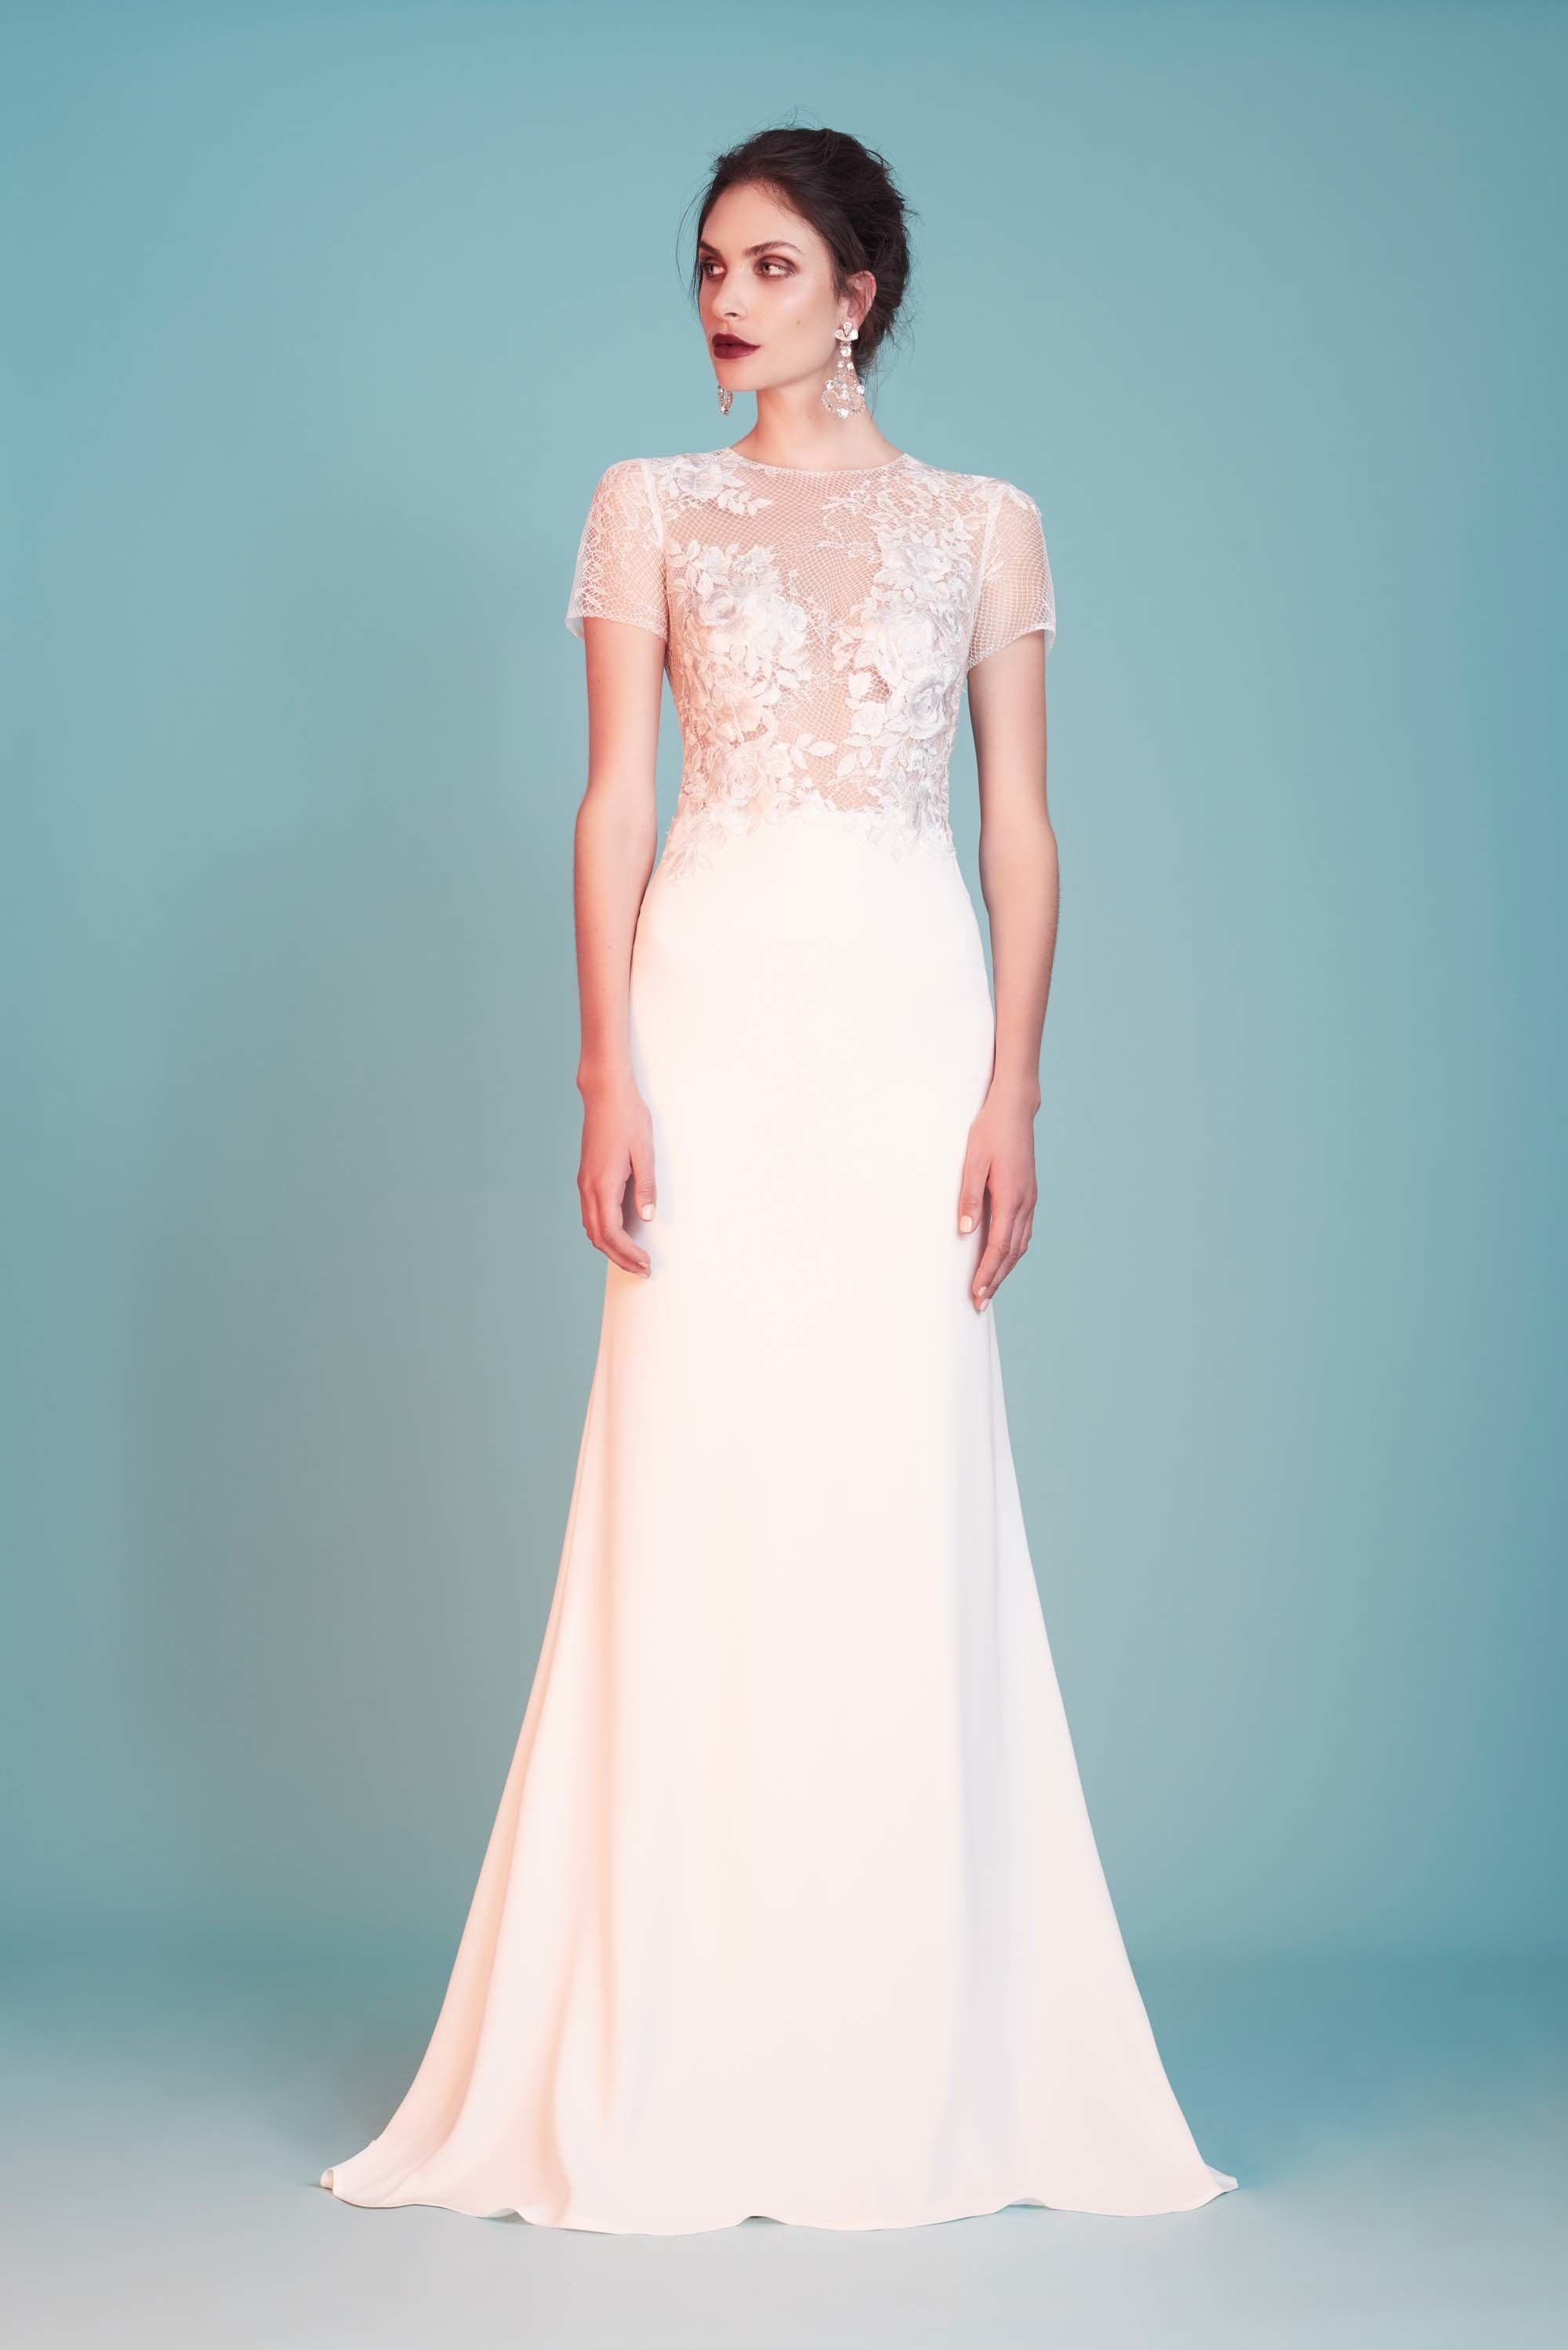 Marvelous Tadashi Shoji Bridal Spring 2018 Collection Photos   Vogue